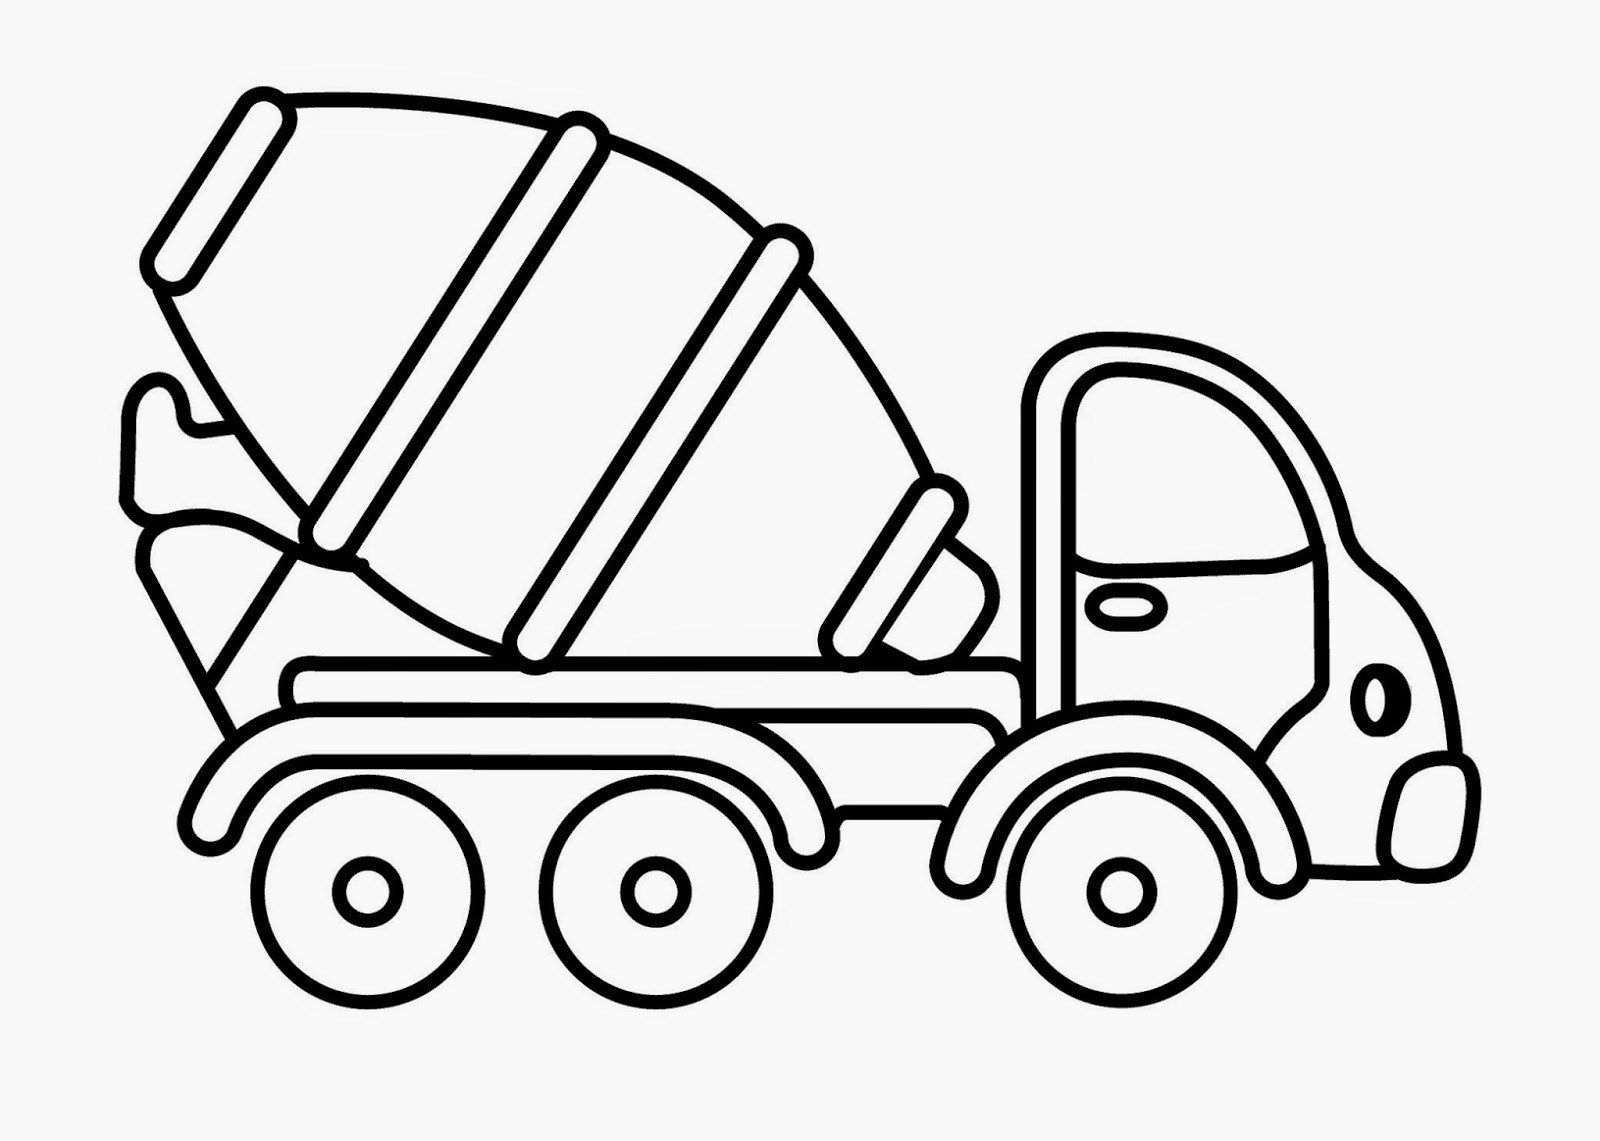 Excavator Coloring Page Best Of Excavator Truck Coloring Pages